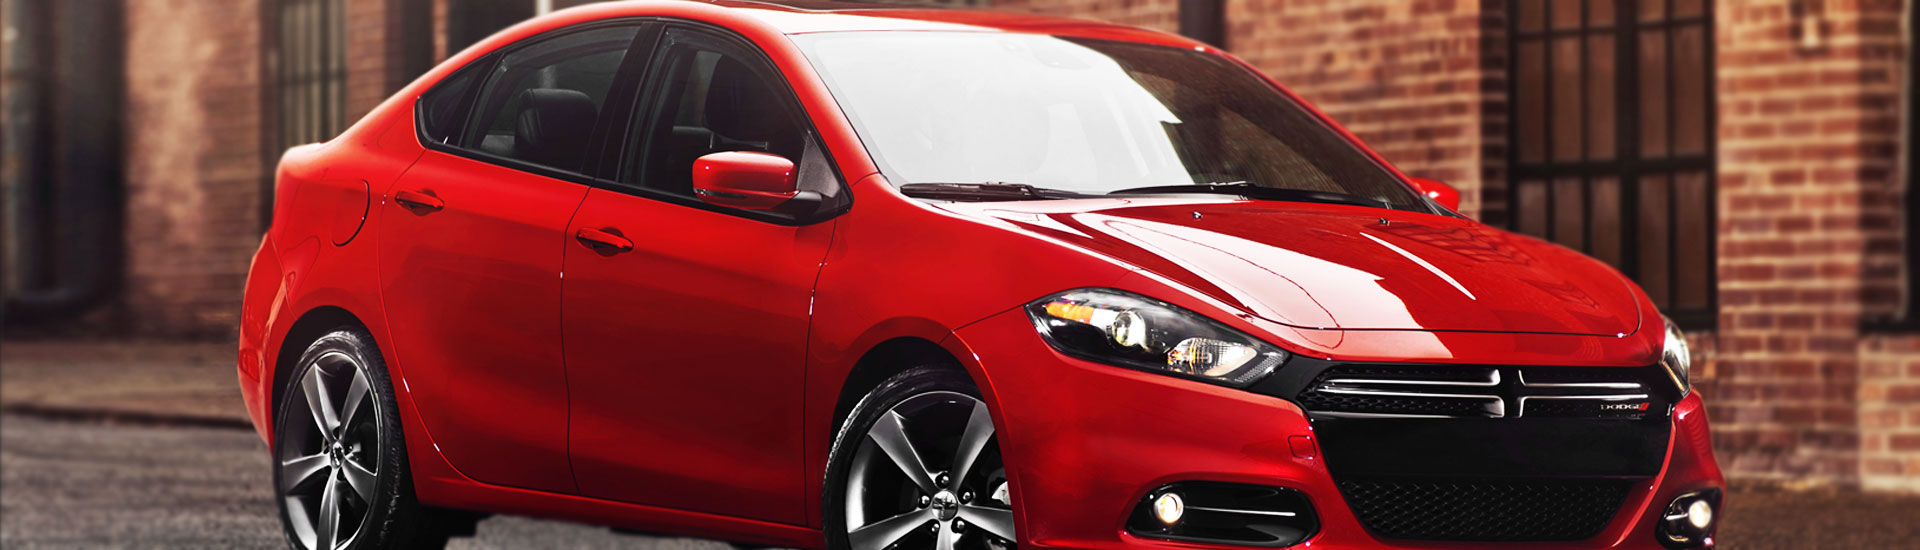 Dodge Dart Window Tint